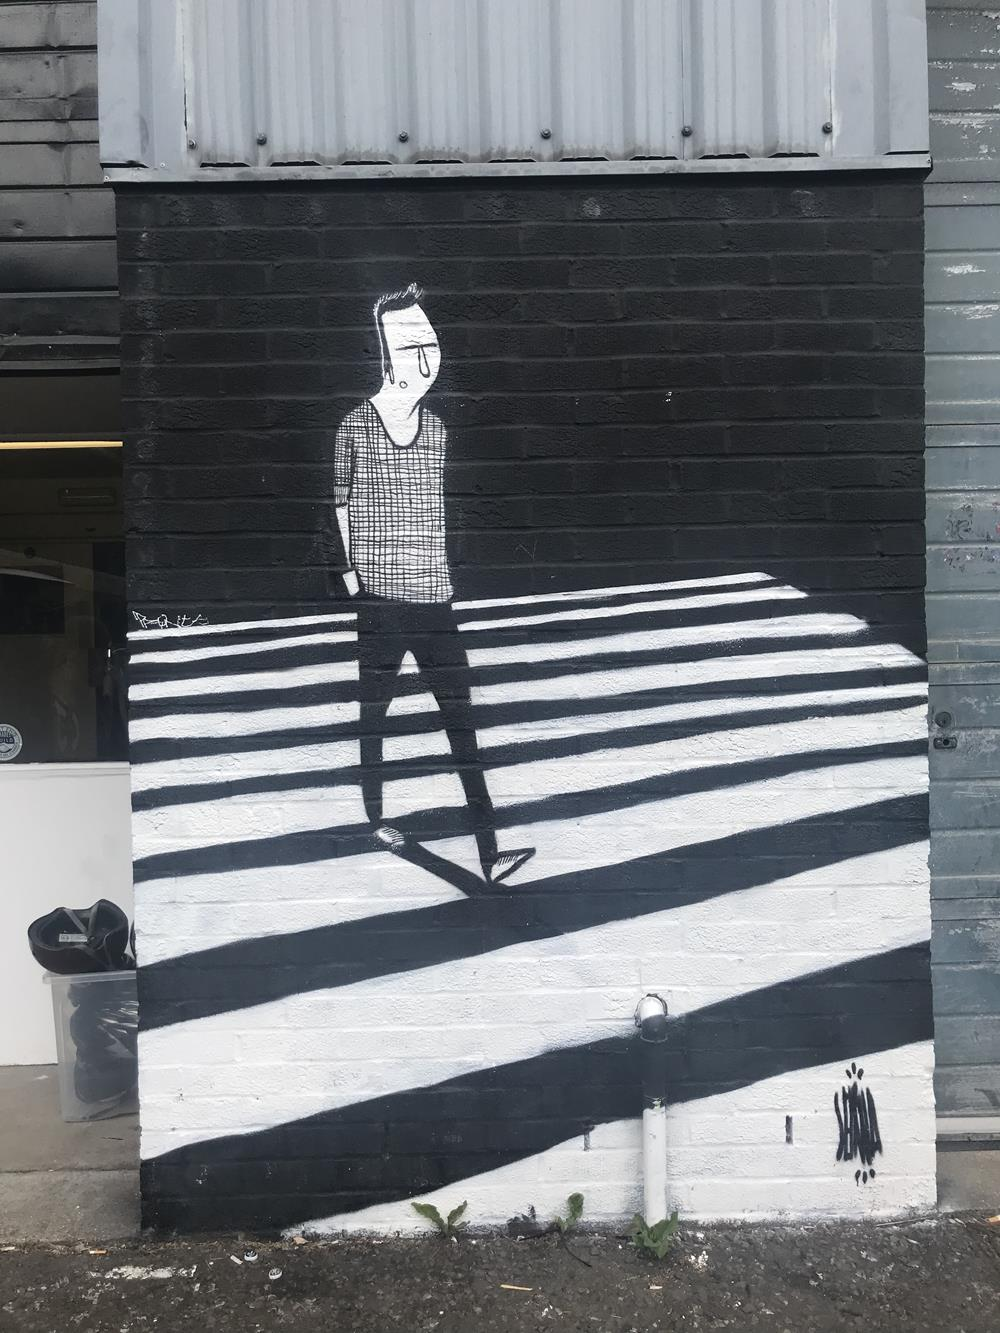 Wall mural featuring a man walking over a zebra crossing